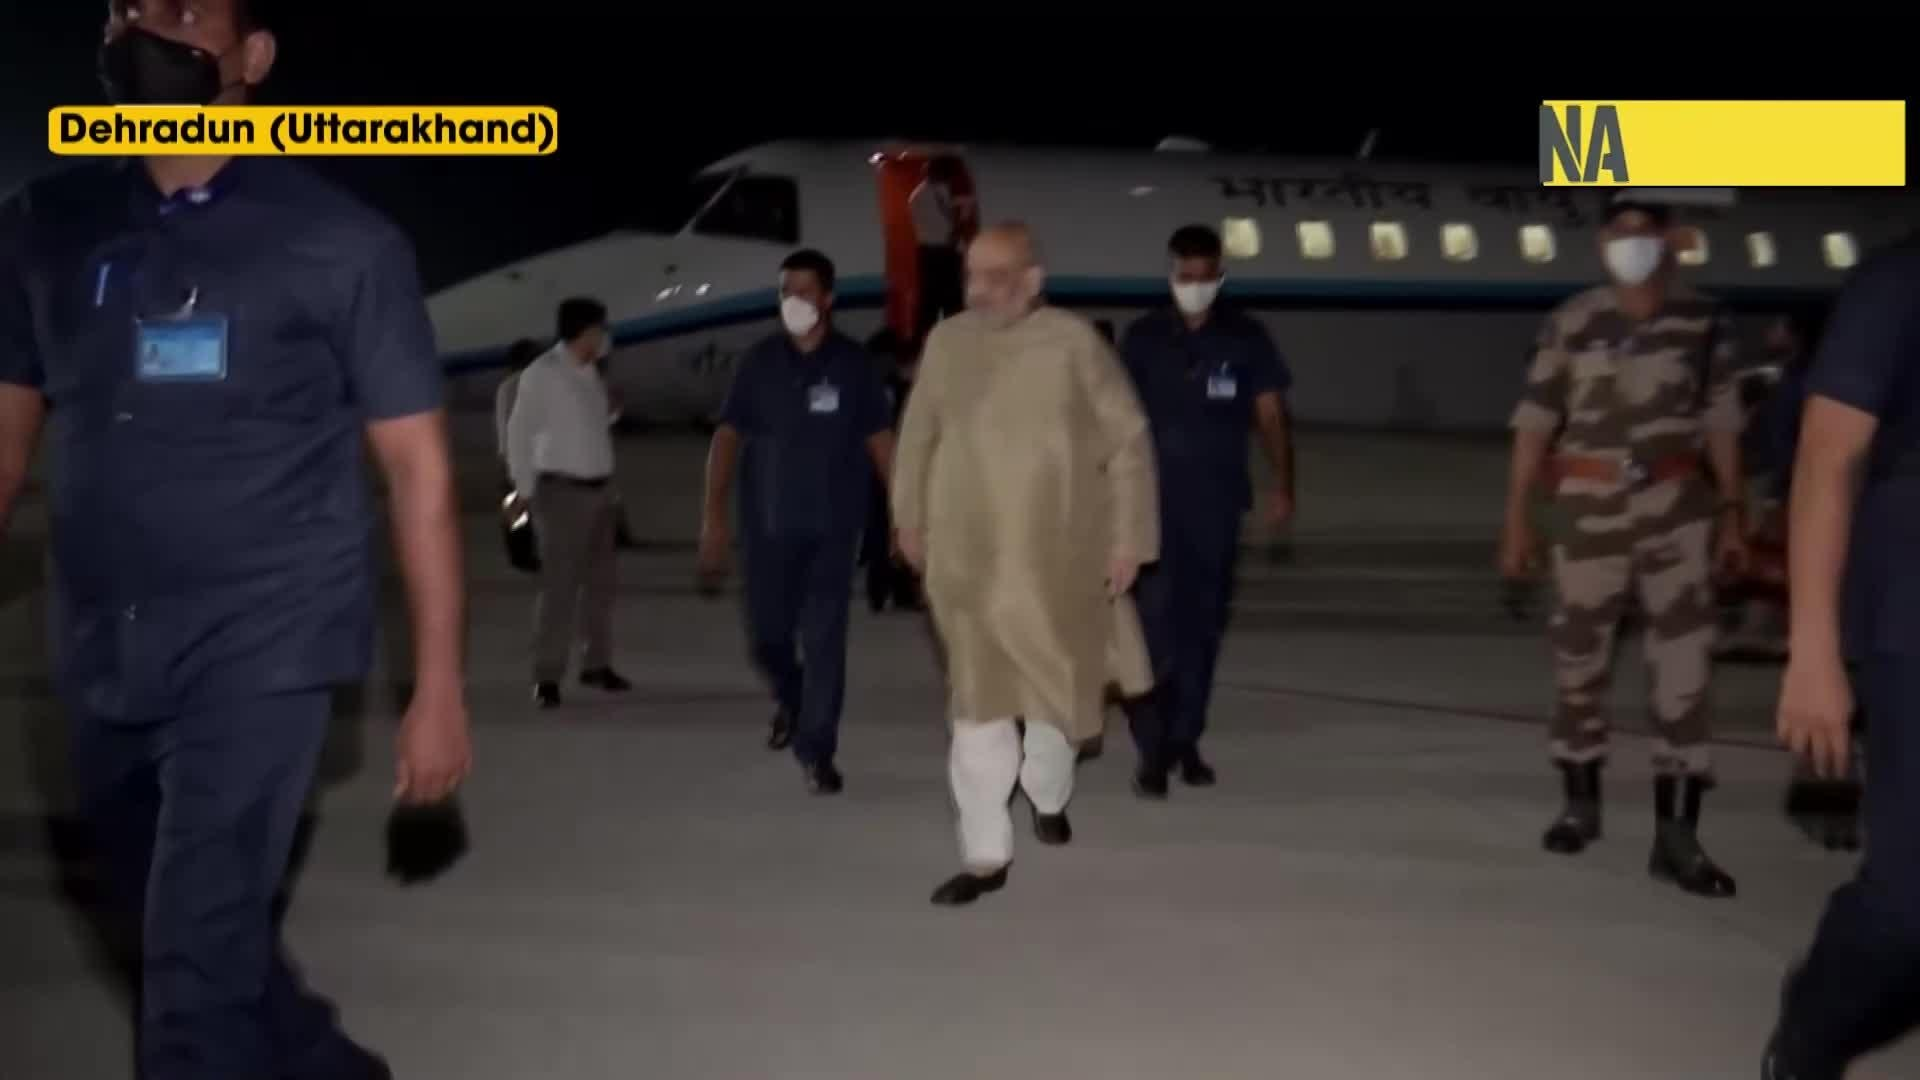 Watch: Union Home Minister Amit Shah arrives at Dehradun airport